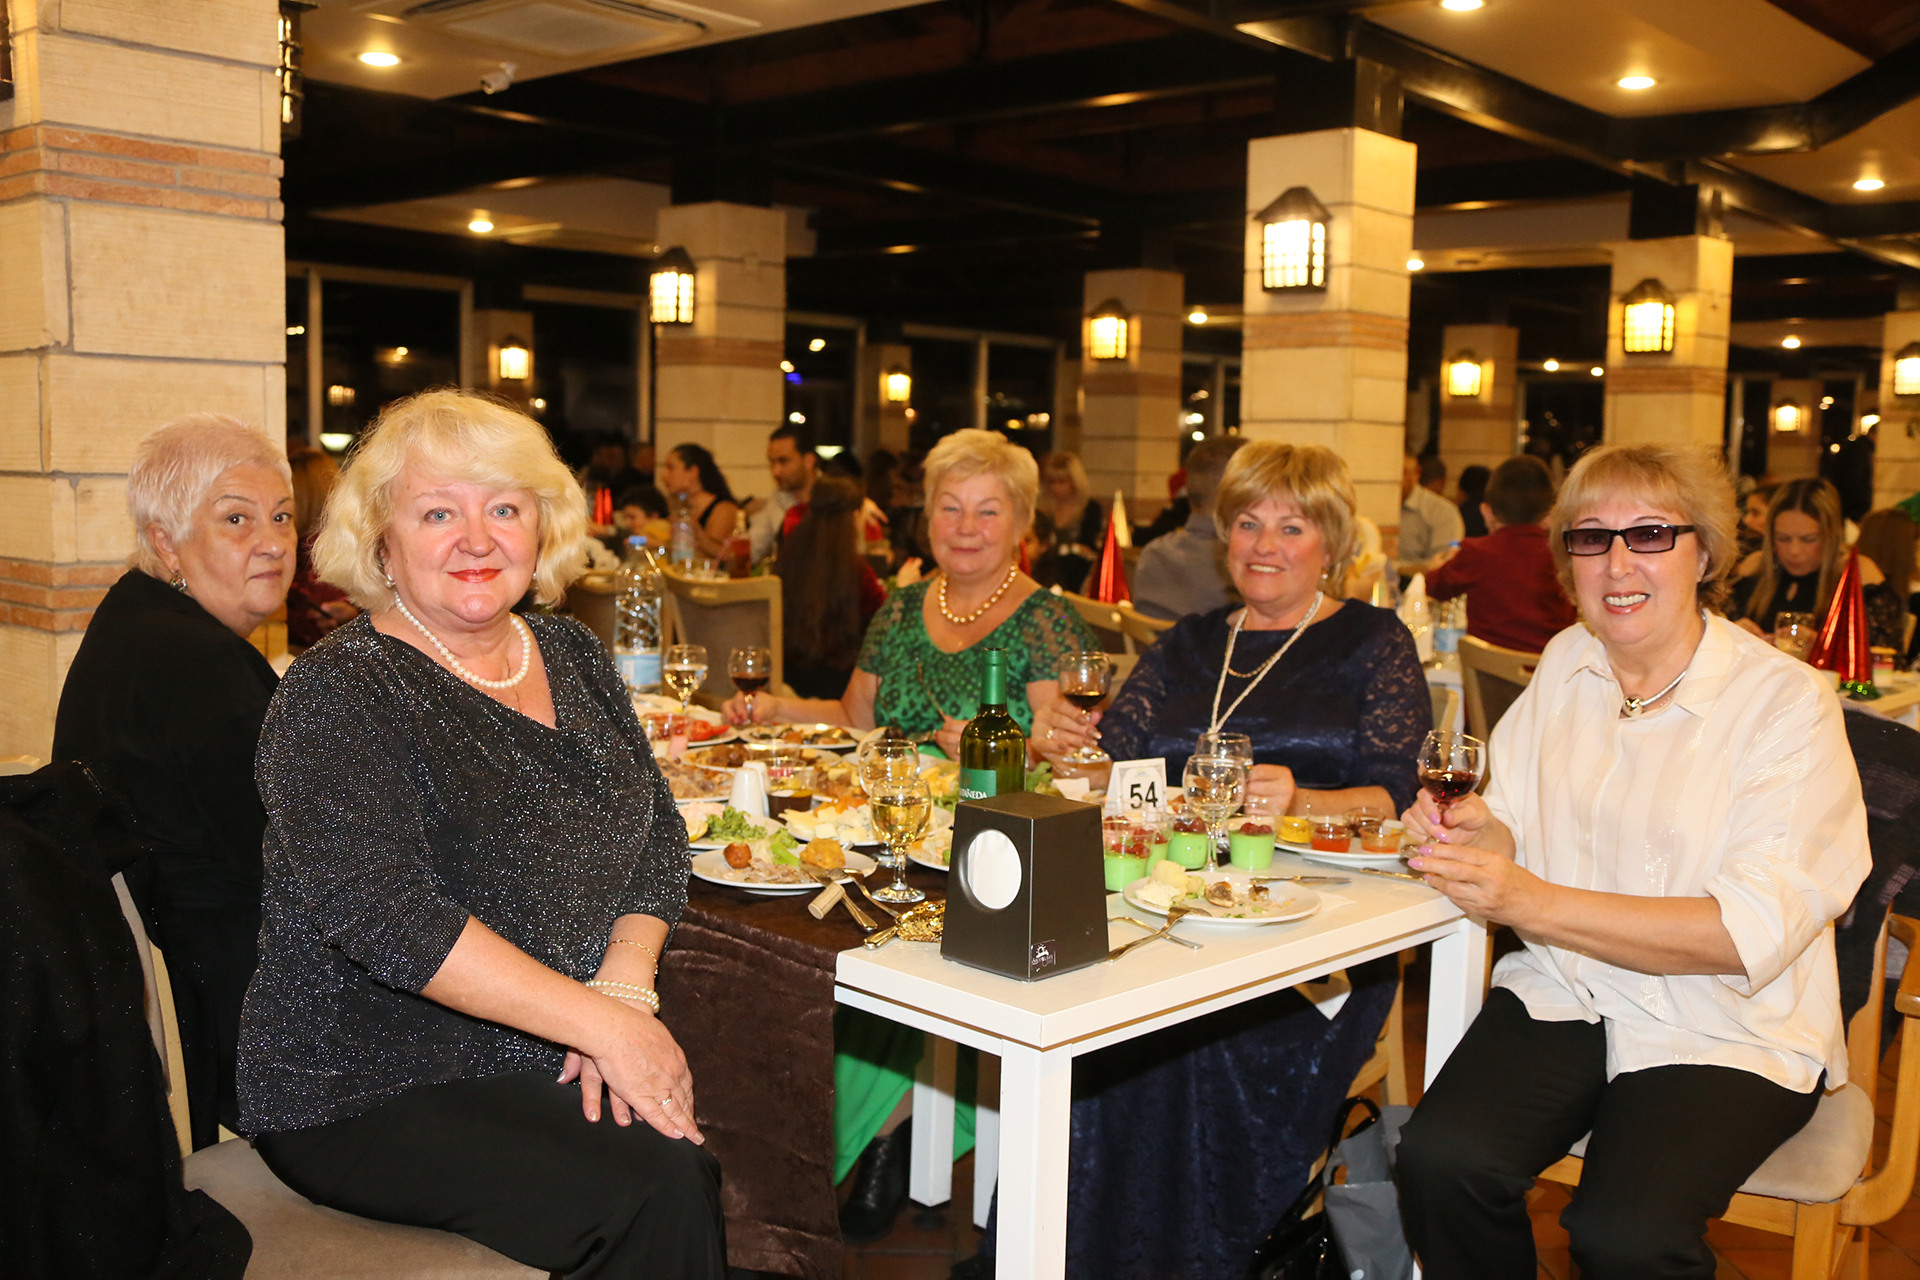 Photos from New Year Eve celebrations at Salamis Hotel